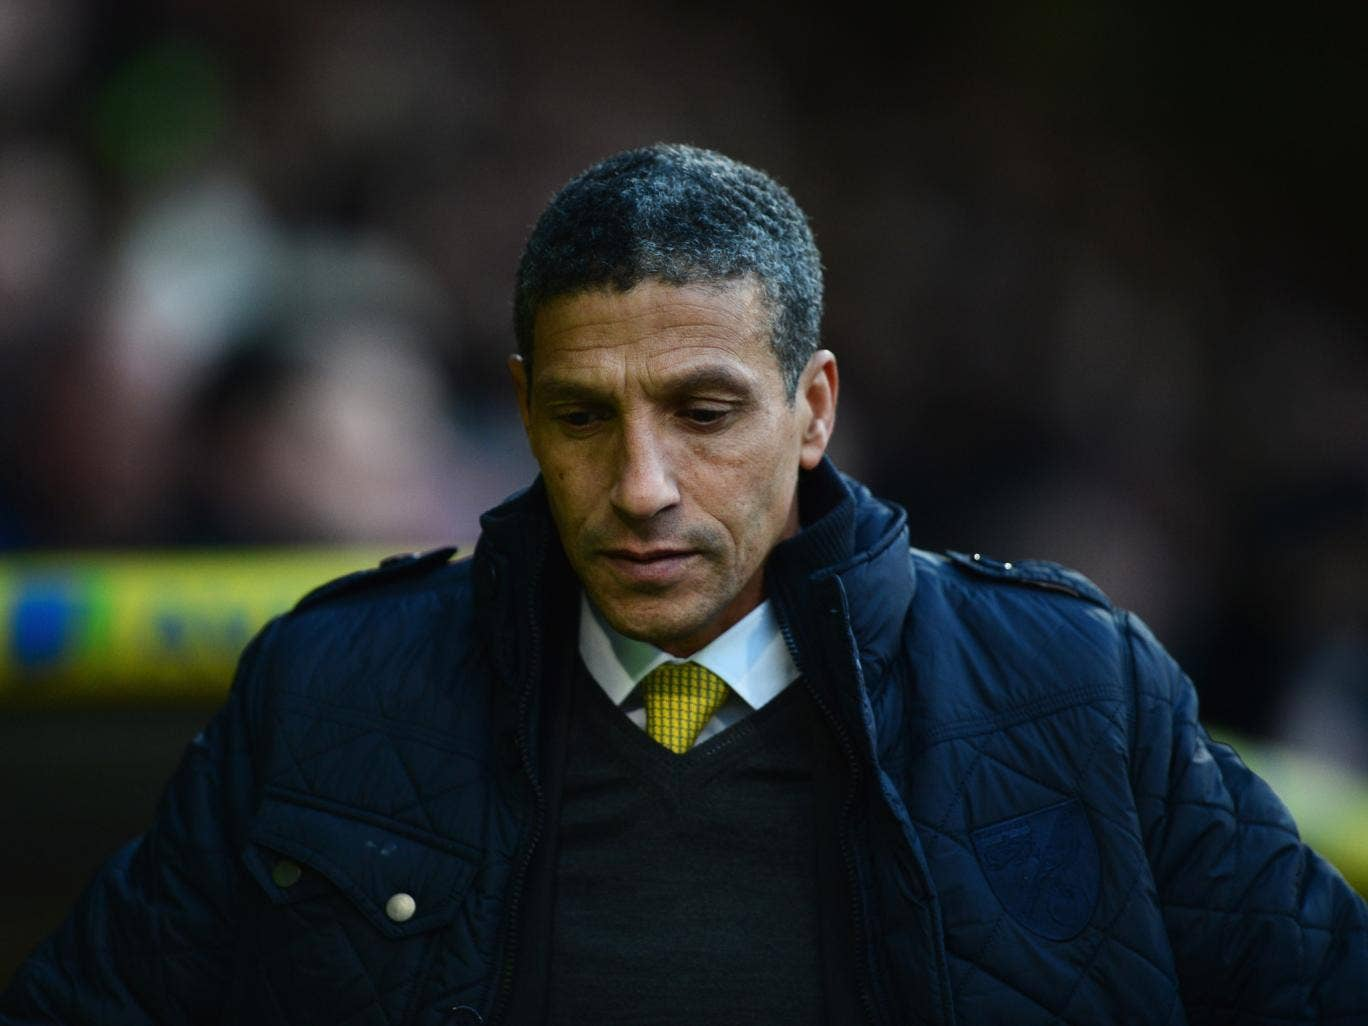 Norwich manager Chris Hughton has defended his decision to go for the win after plan backfired when Scott Parker scored a late winner for Fulham